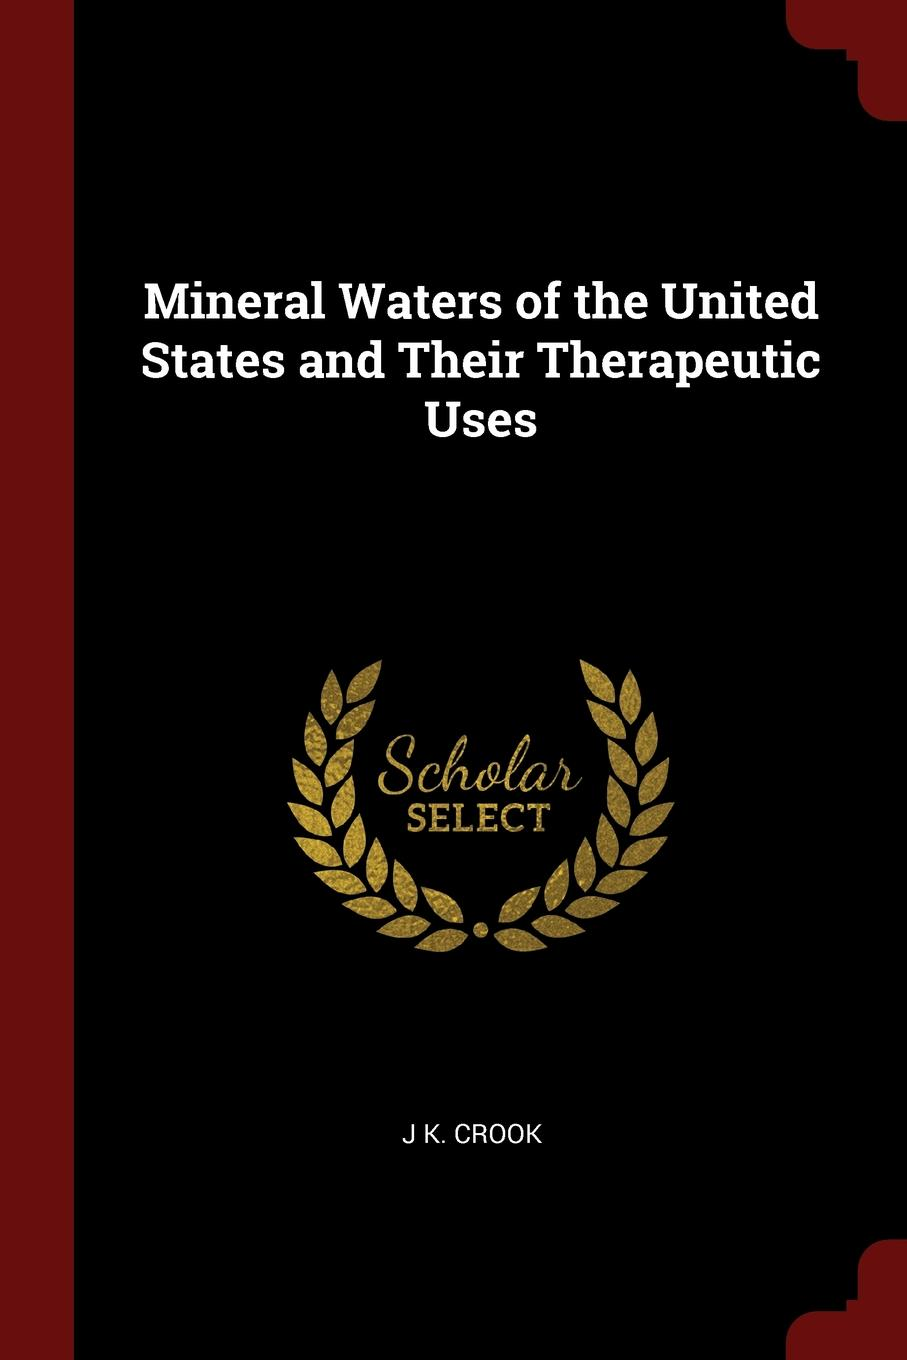 J K. Crook Mineral Waters of the United States and Their Therapeutic Uses